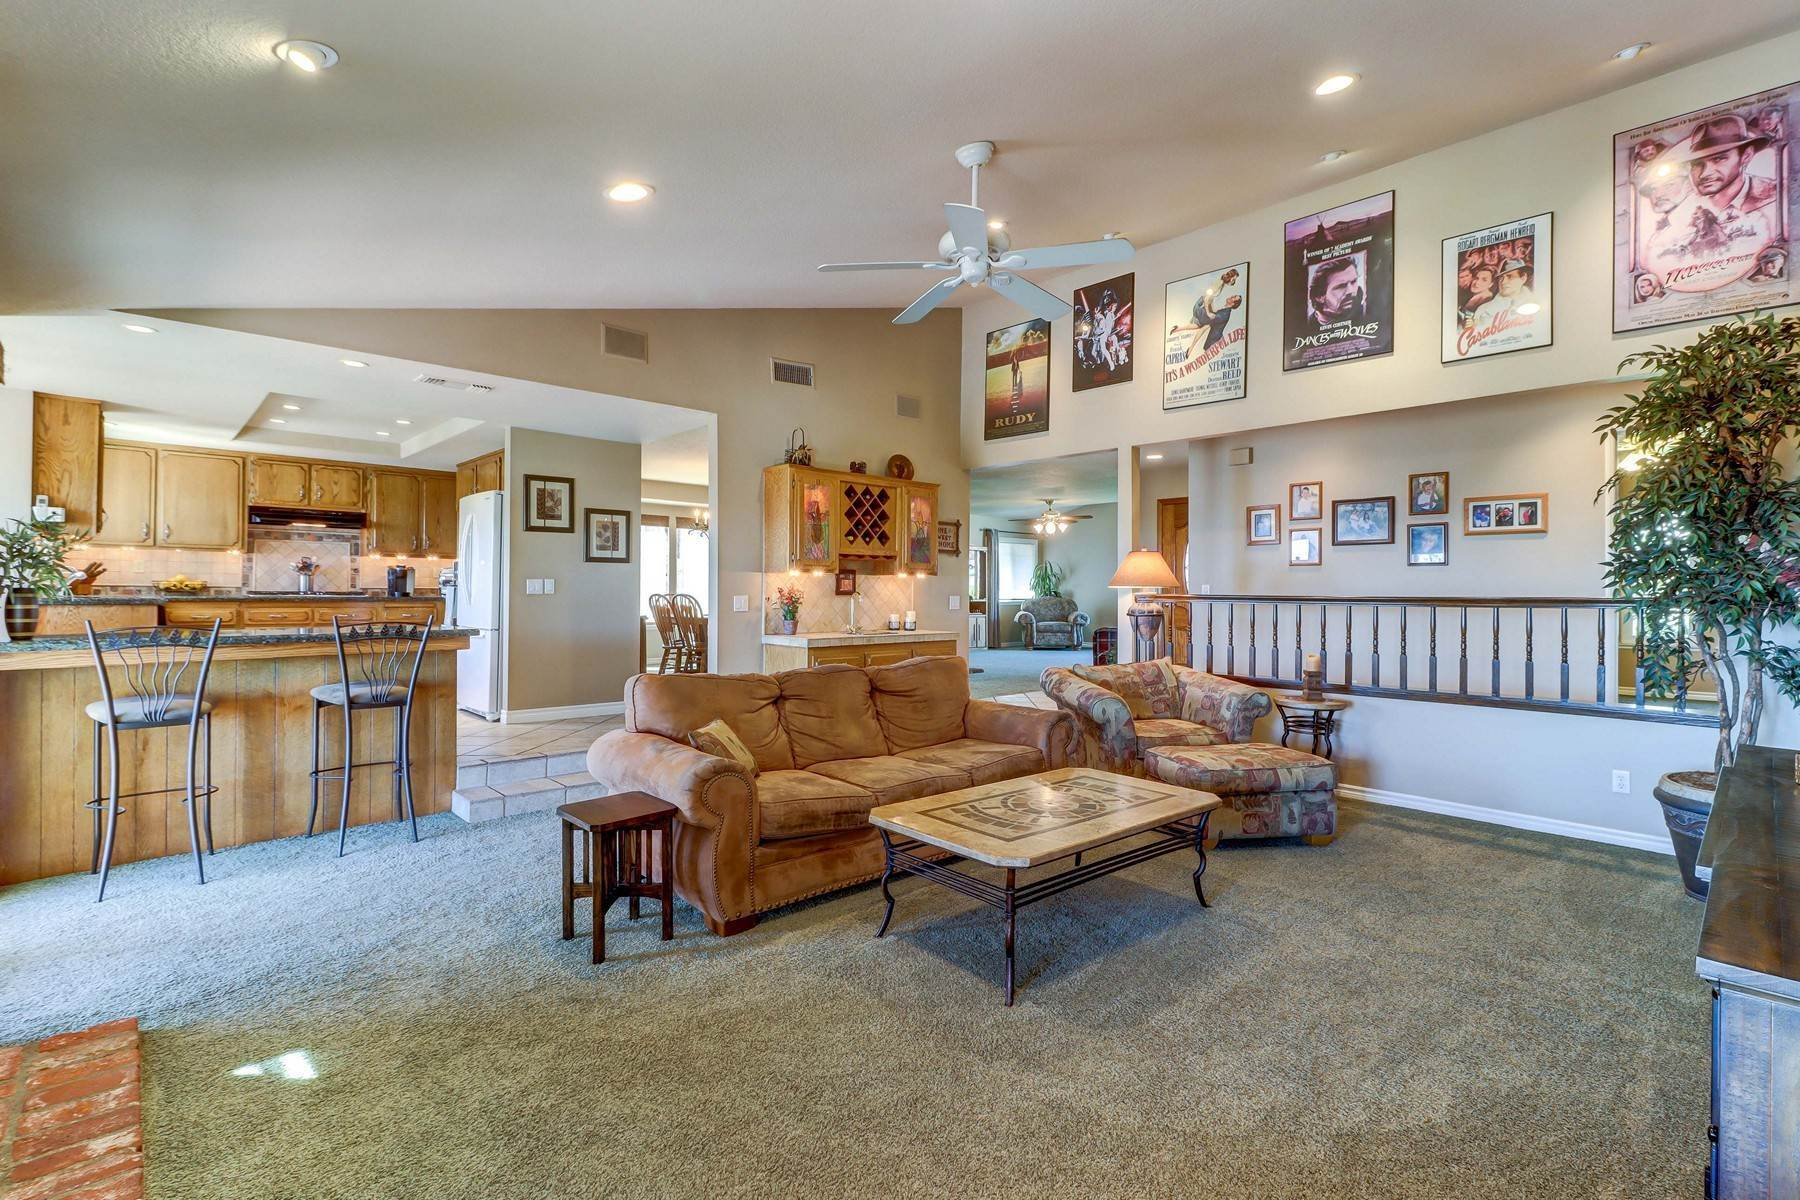 10. Single Family Homes for Sale at 10329 Vista Grove Street, Rancho Cucamonga, CA 91737 10329 Vista Grove Street Rancho Cucamonga, California 91737 United States